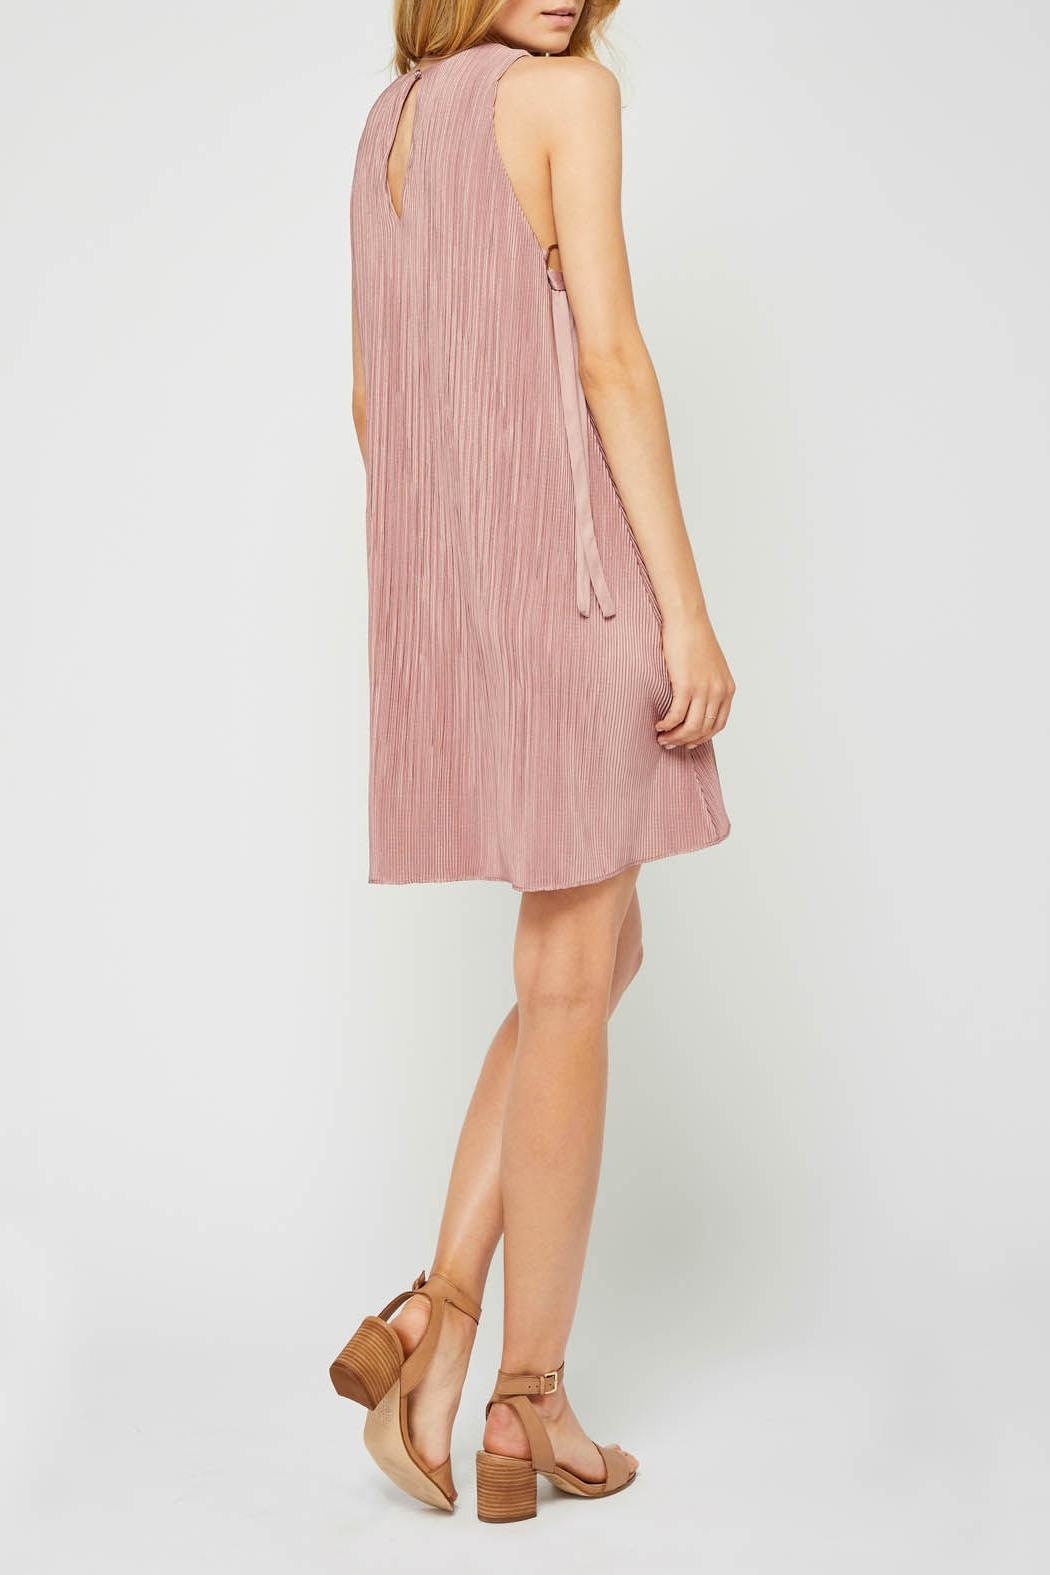 Gentle Fawn Renee Dress - Back Cropped Image